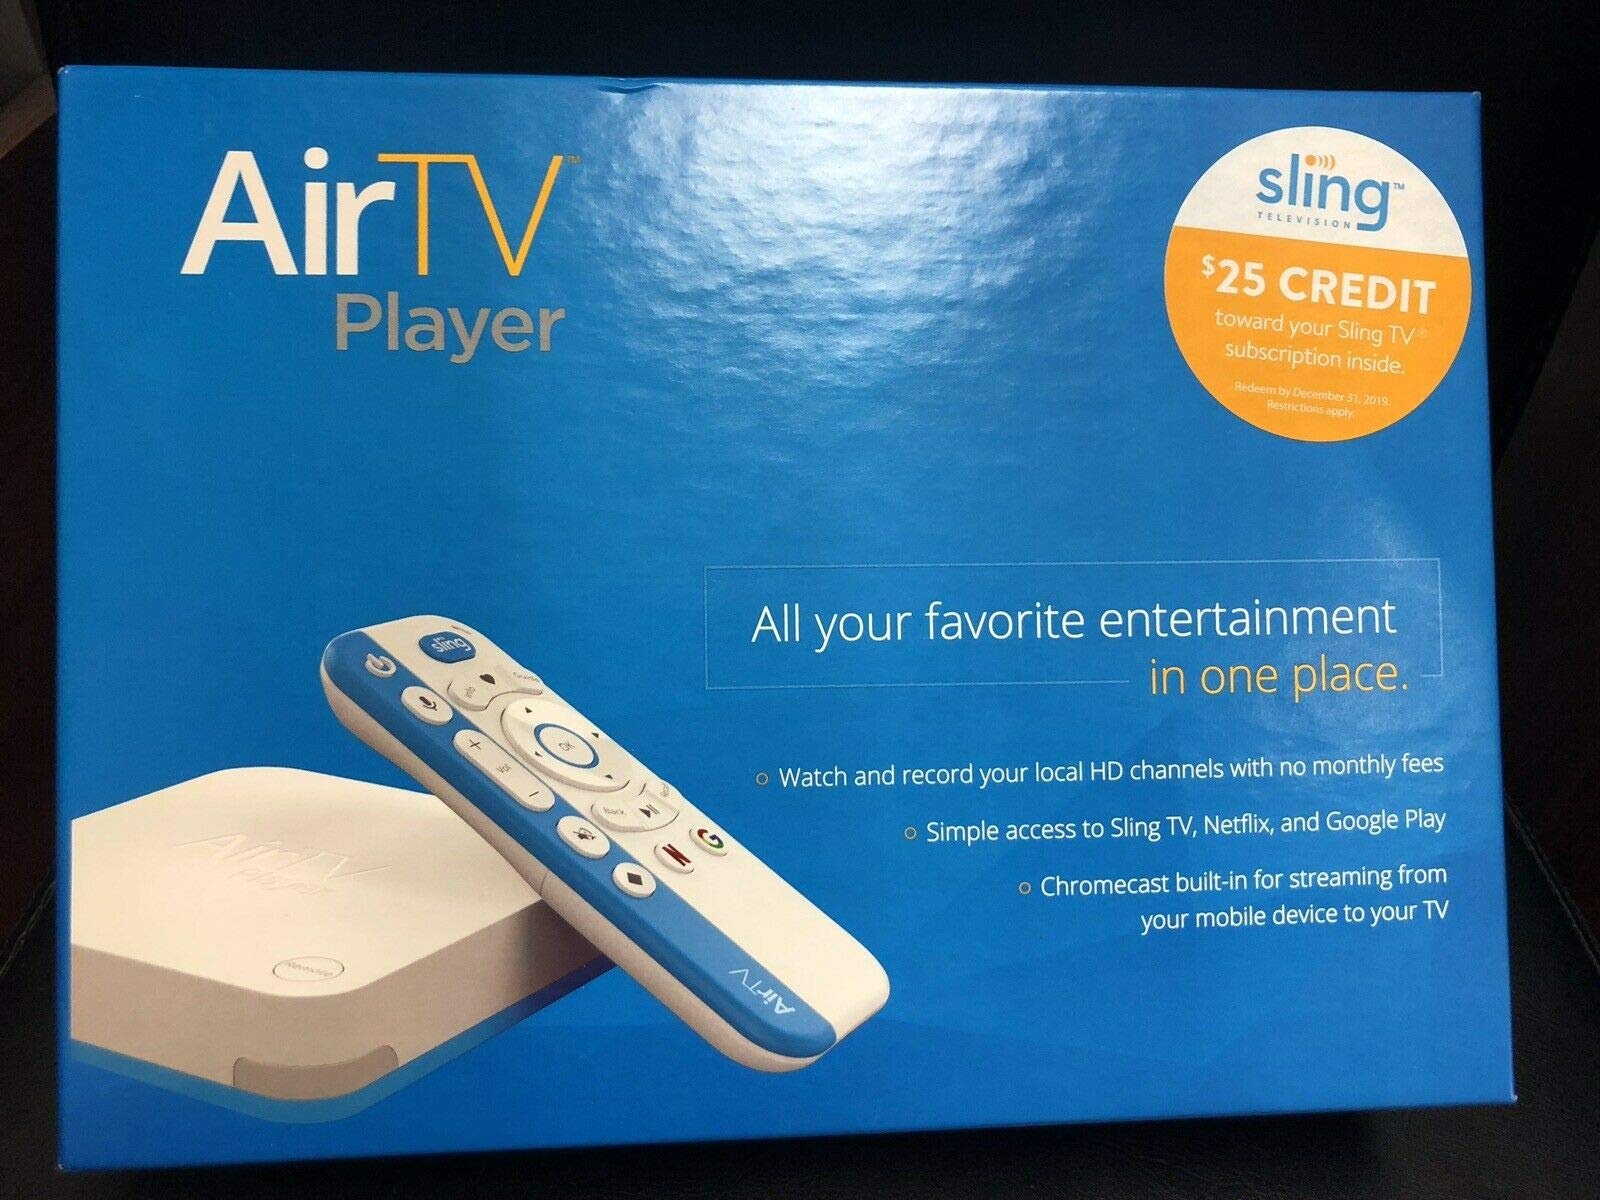 AirTV Player All in One with Dual Tuner and $25 Sling TV Credit by AirTV